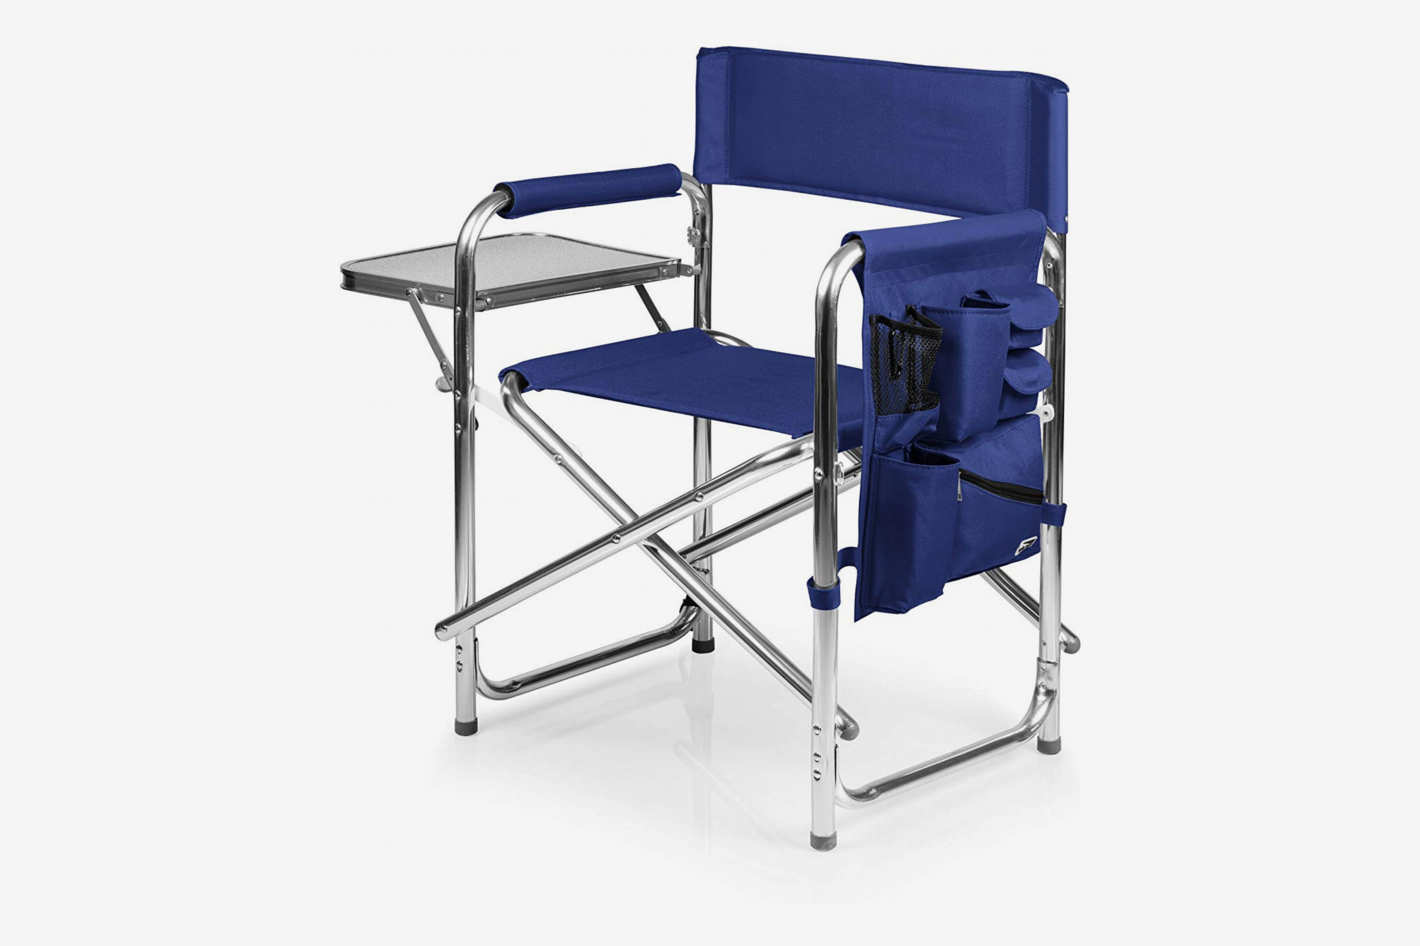 Oniva Picnic Time Portable Folding Sports Chair